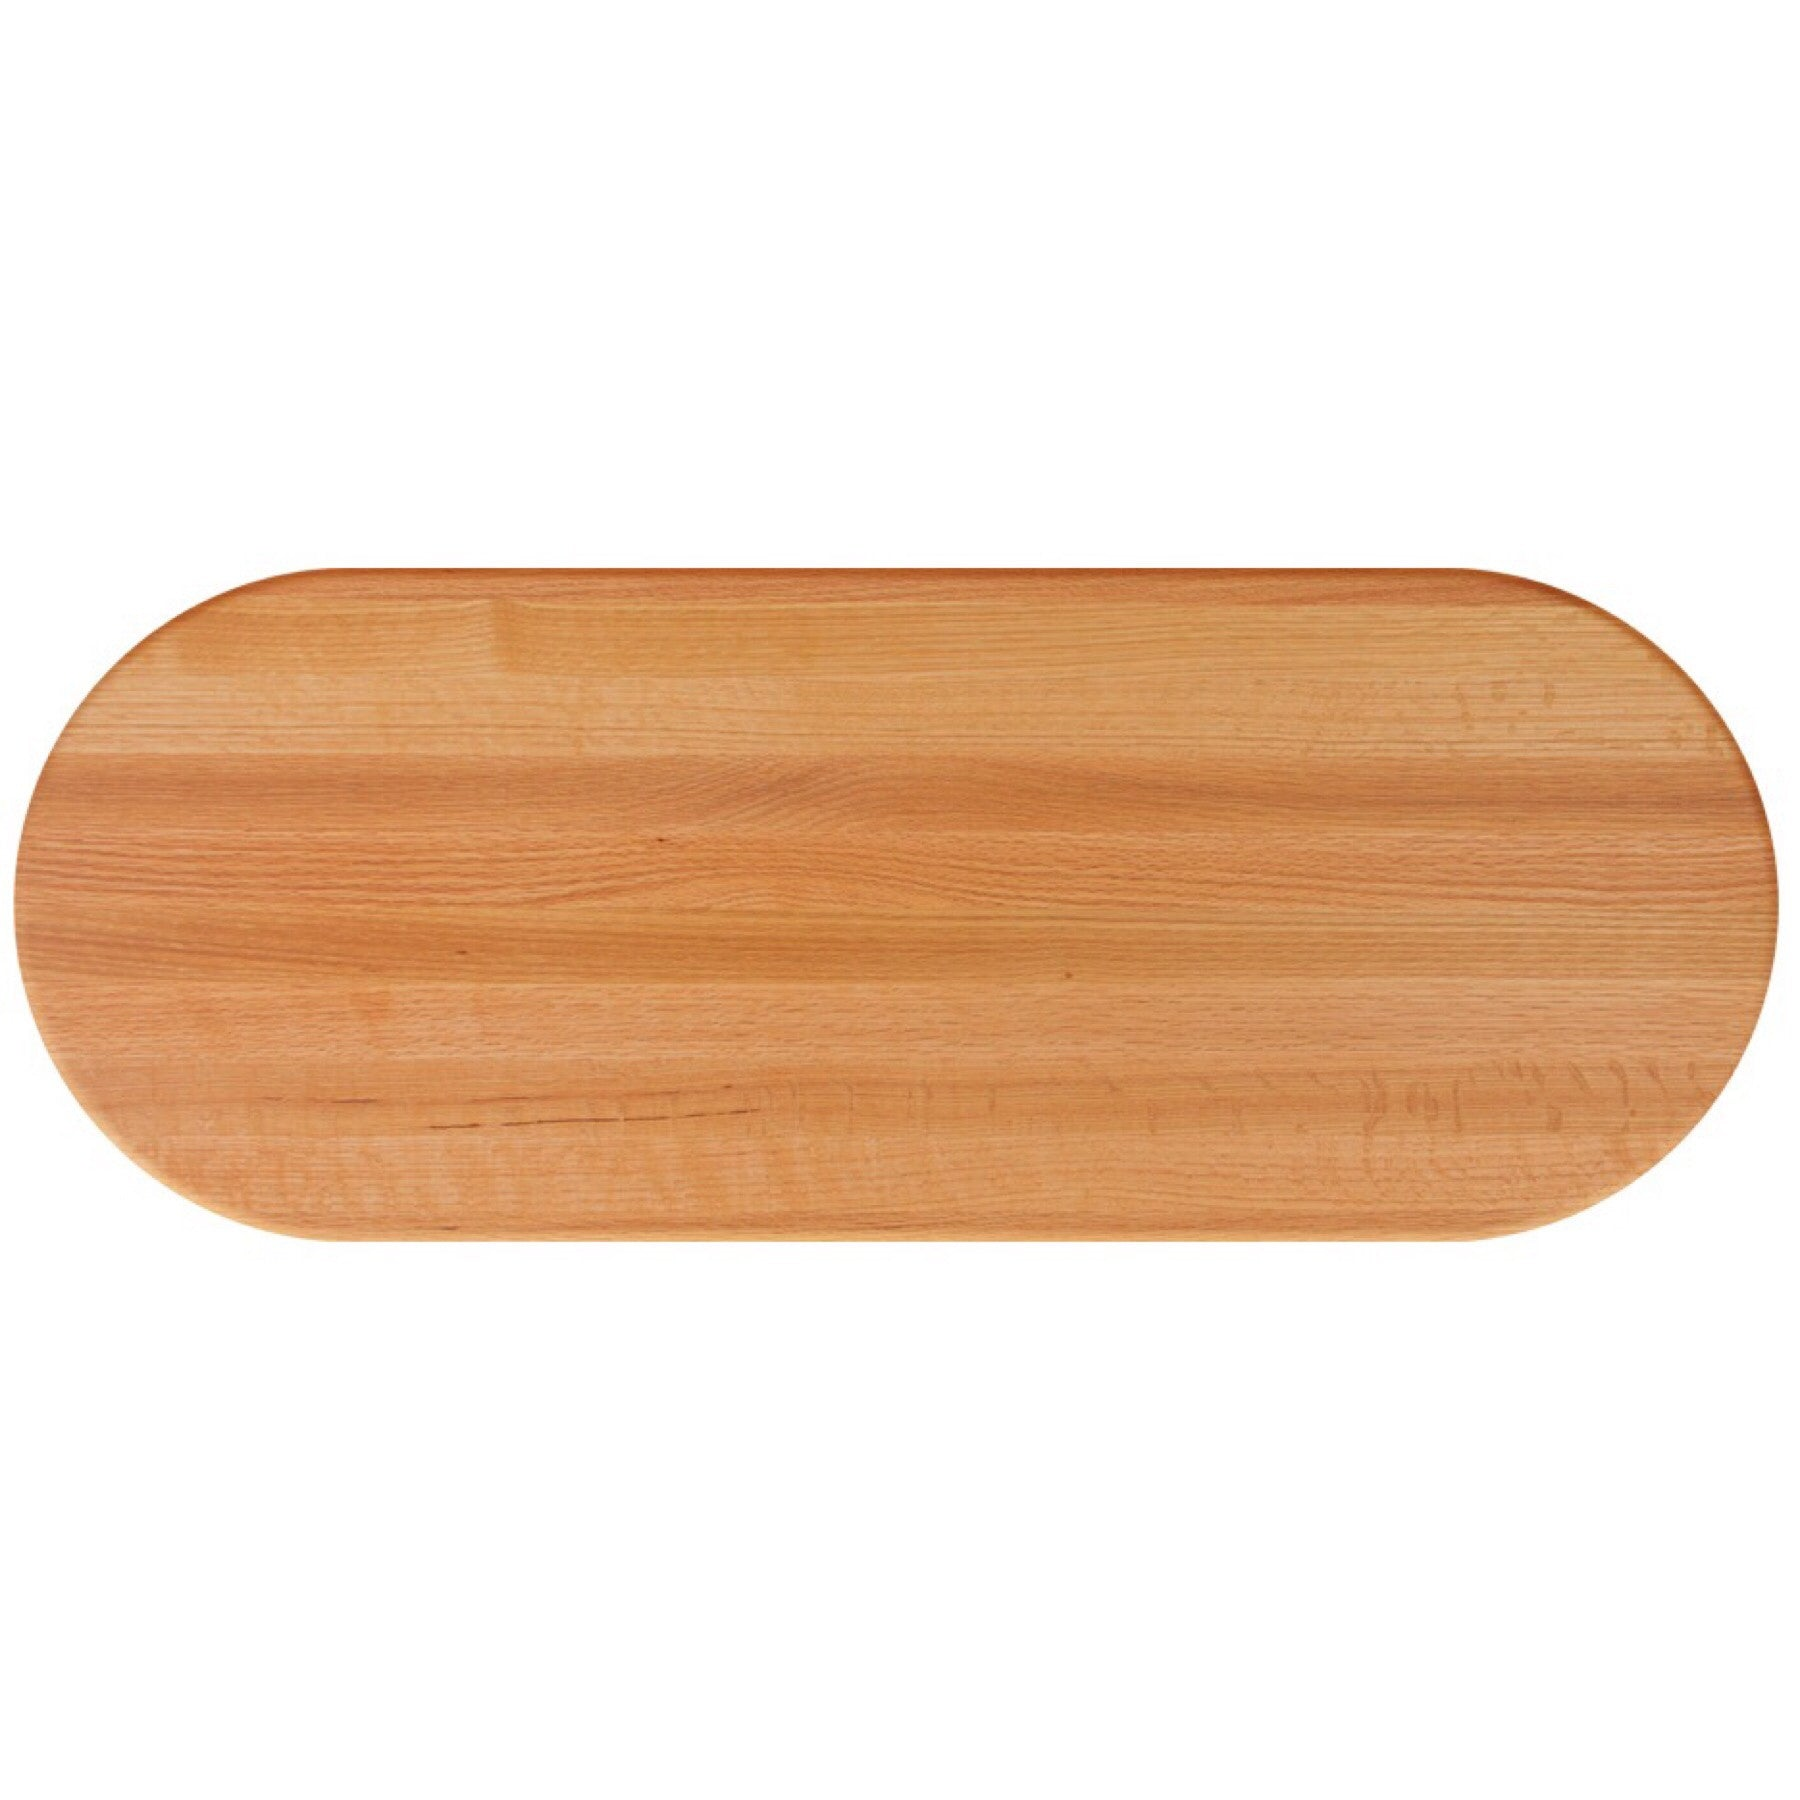 John Boos Oval RTO Red Oak Butcher Block Table Top - Stainable